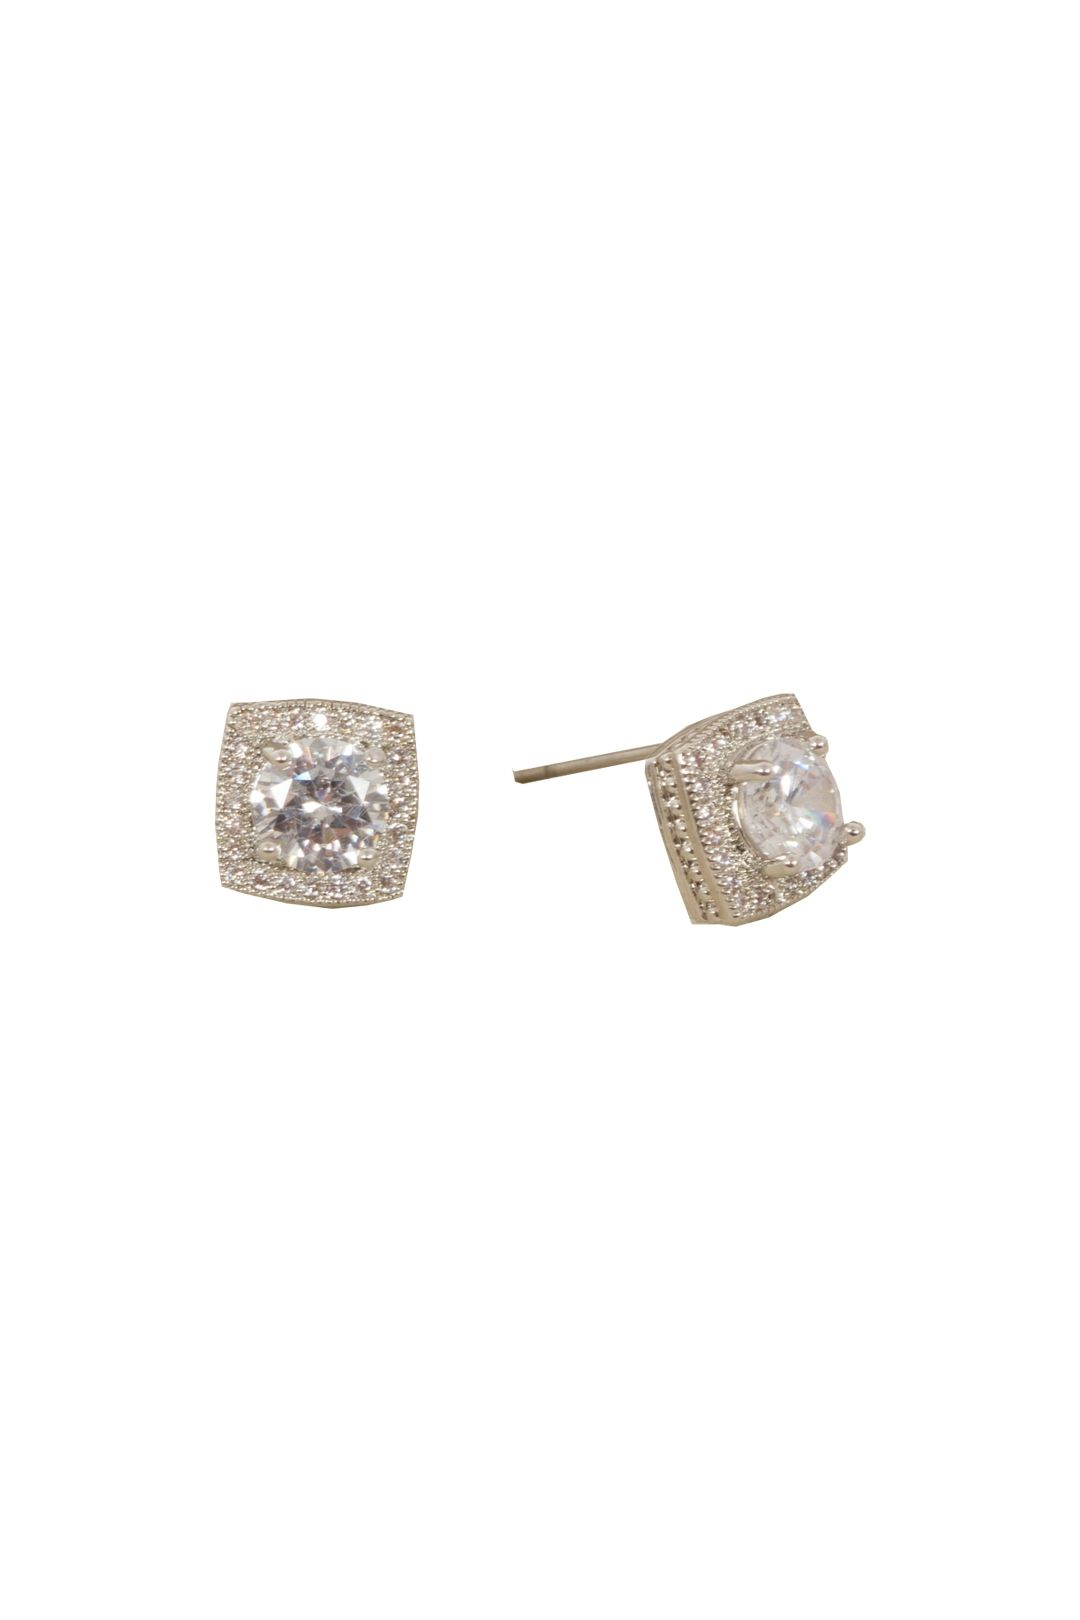 Adorne - Cubic Zirconia Mini Square Stud Earring - Silver - Front